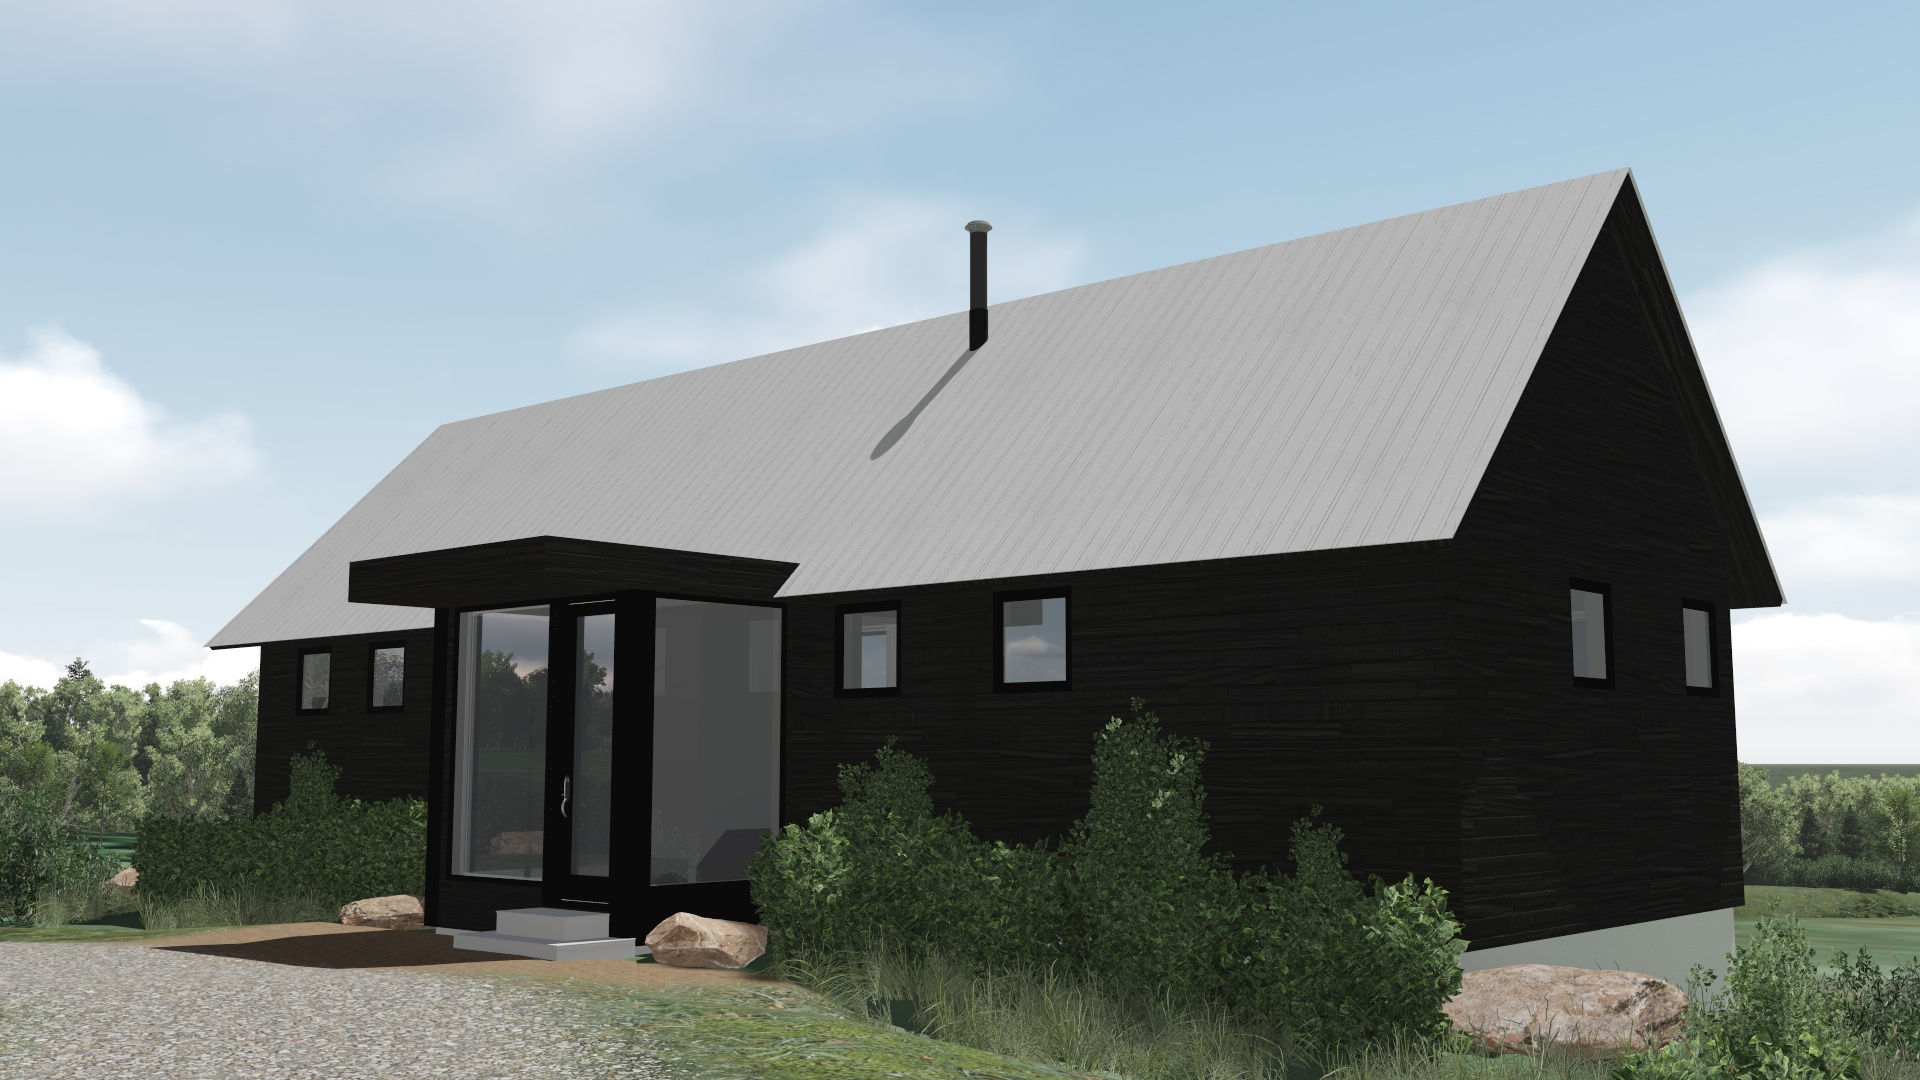 02 - LOW STRAIGHT GABLE